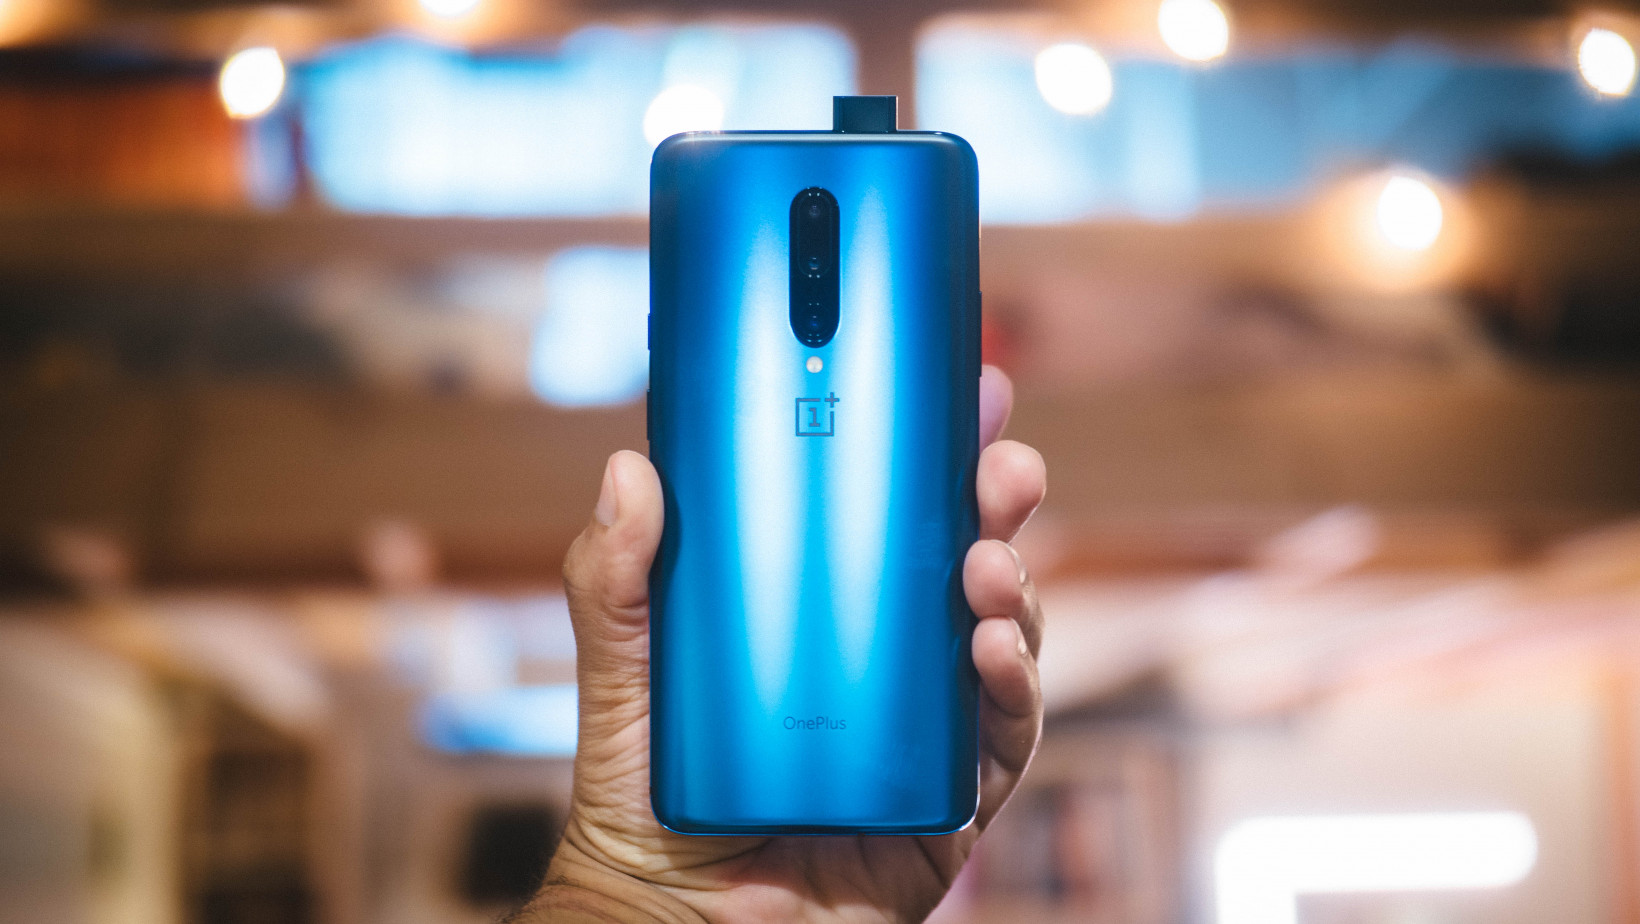 First Impressions: The OnePlus 7 Pro doesn't hold back